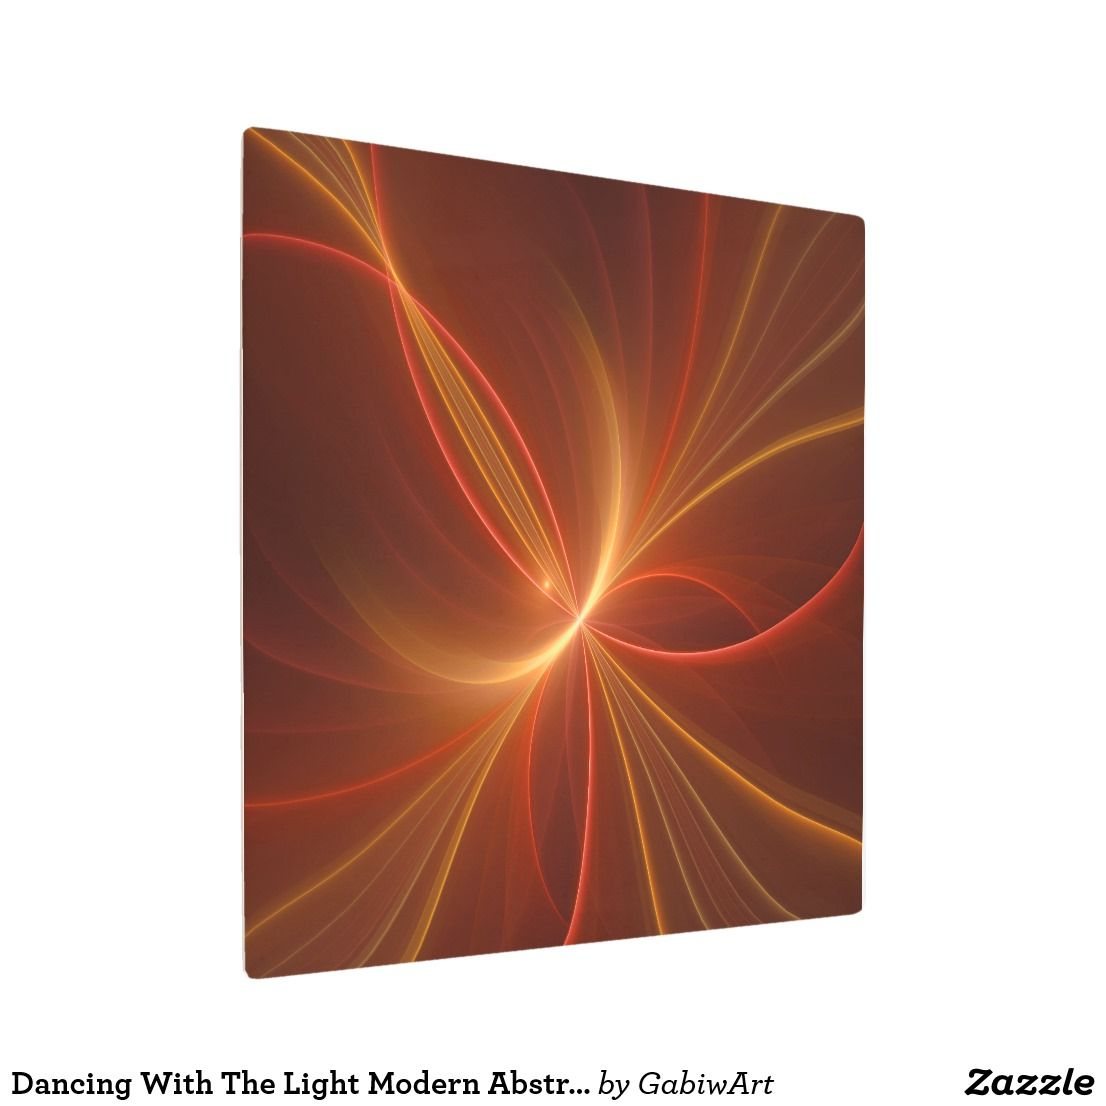 Kunstdrucke Tiermotive Dancing With The Light Modern Abstract Fractal Art Zazzle